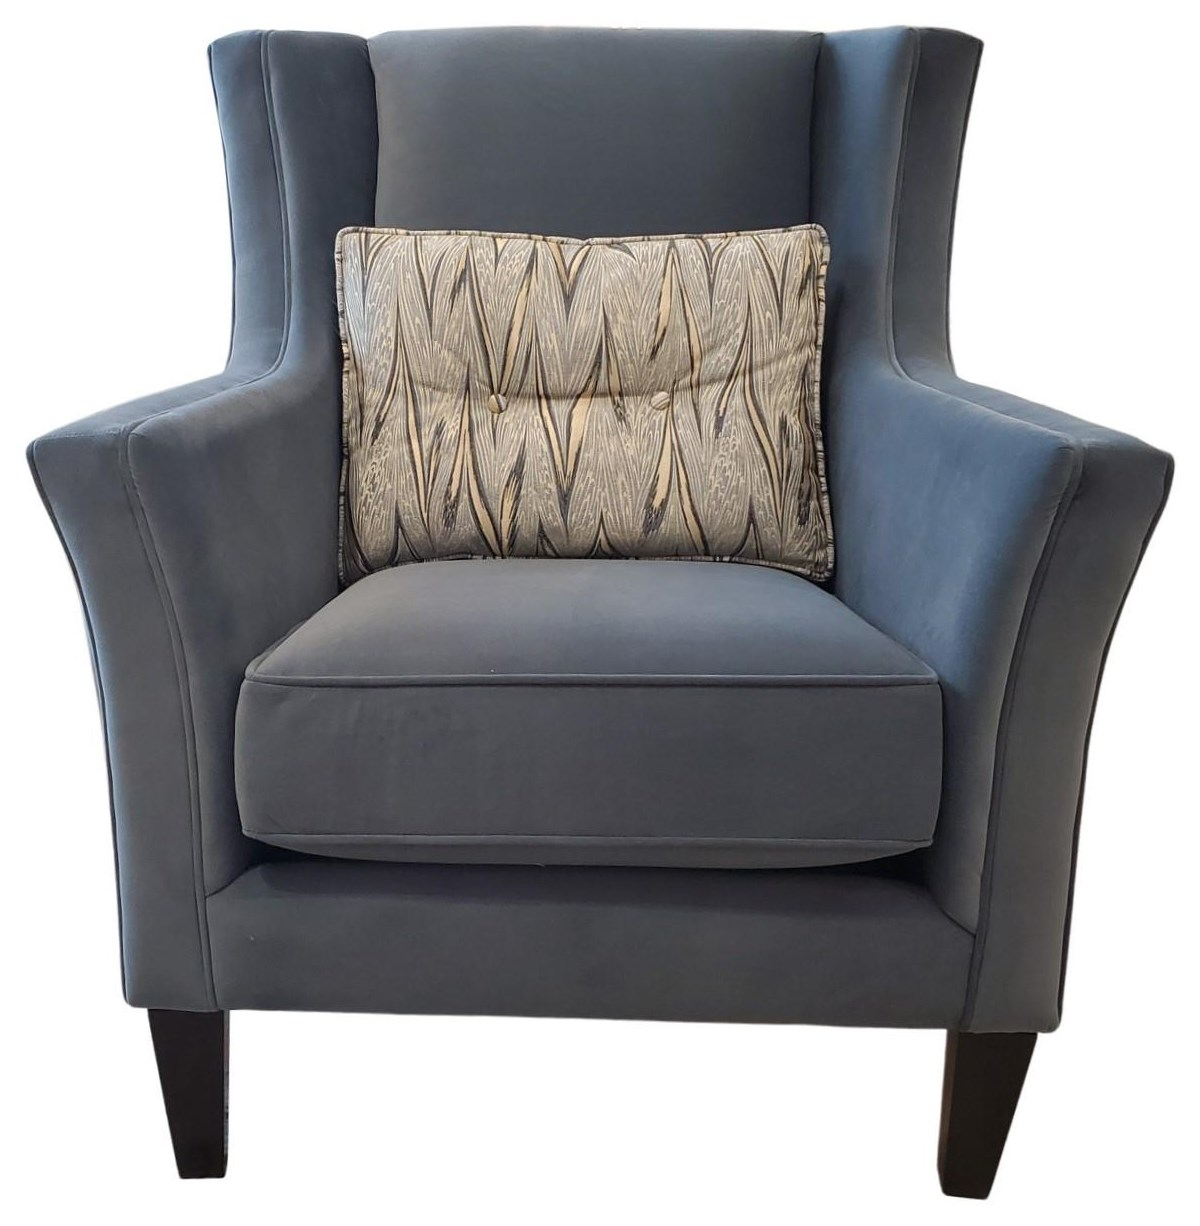 2825 2825C by Decor-Rest at Upper Room Home Furnishings